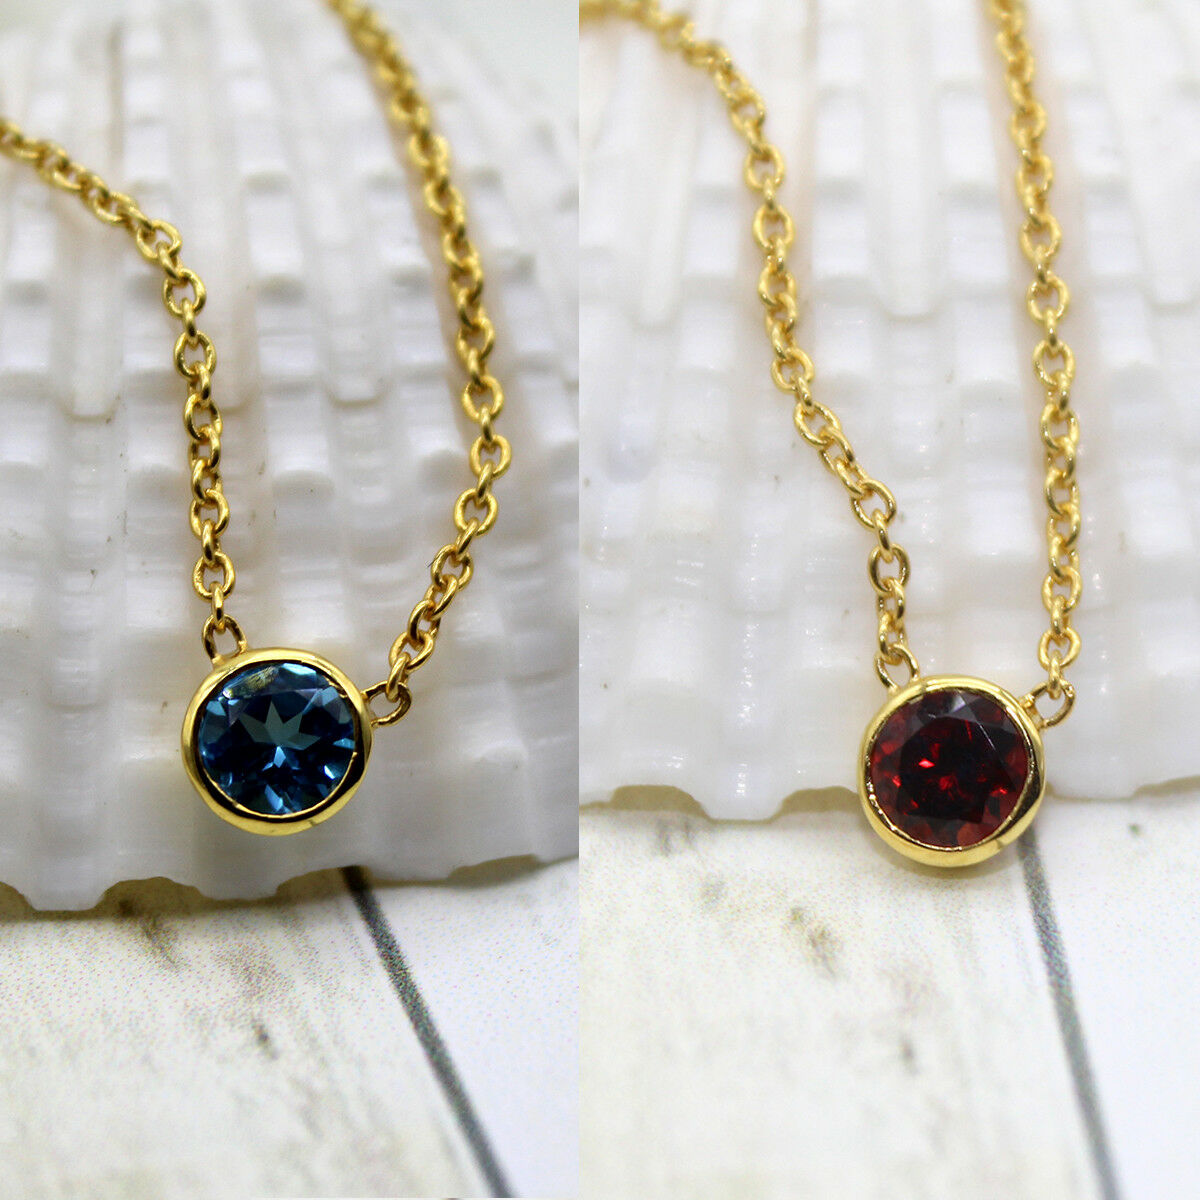 Garnet bluee Topaz Pendant 18k Yellow gold Plated Round Shape Pendant With Chain